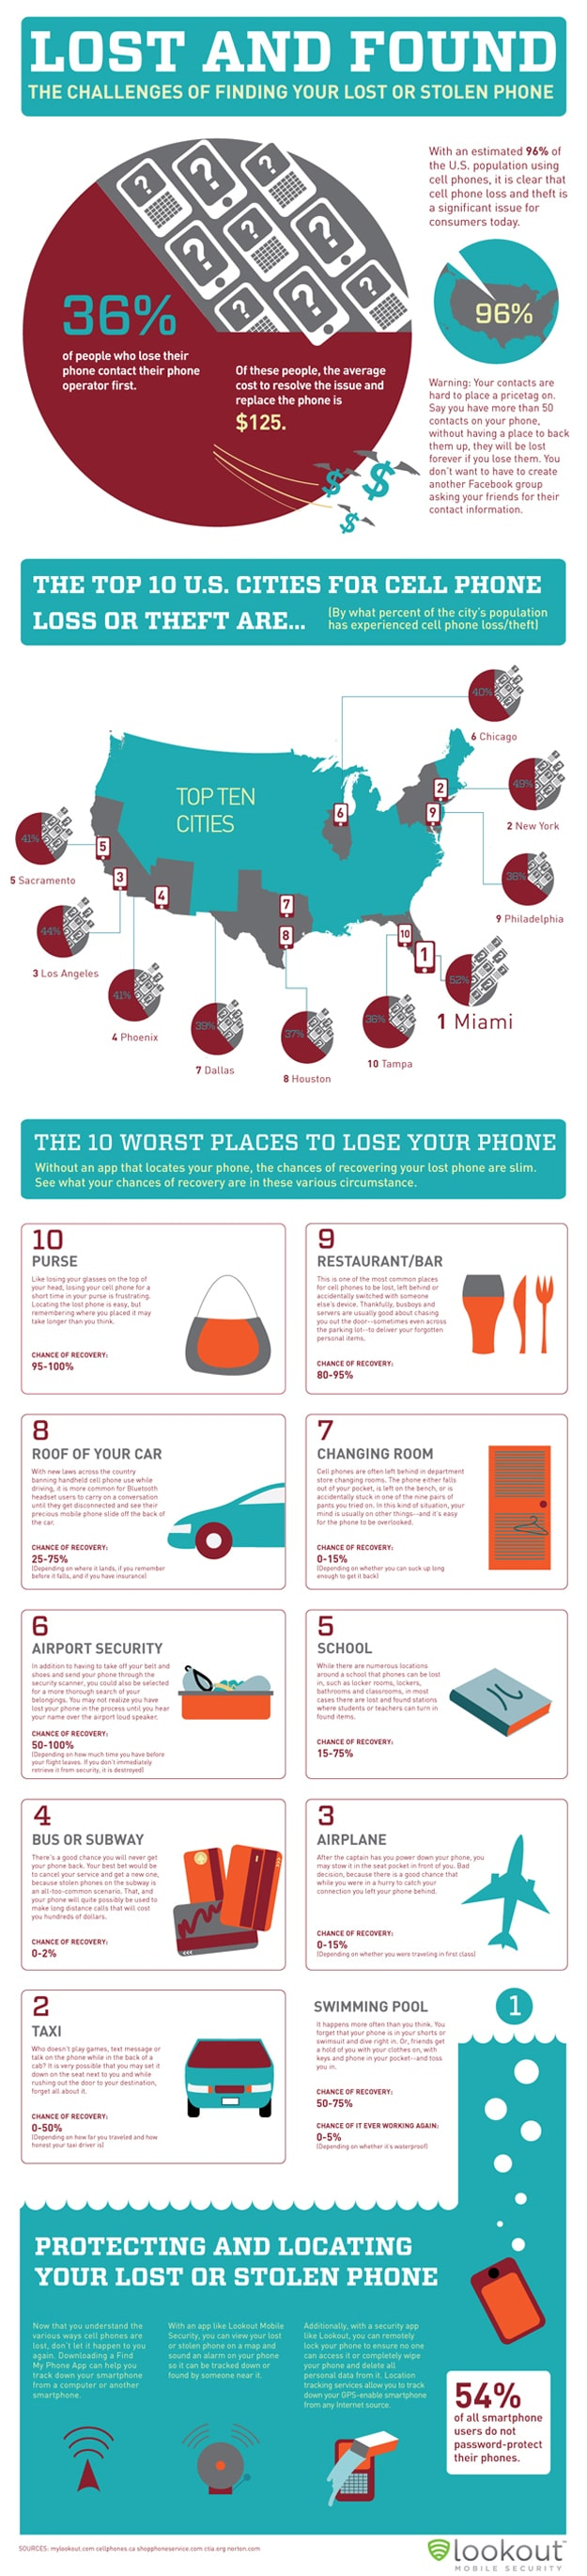 Top 10 Worst Places To Lose Your Smartphone